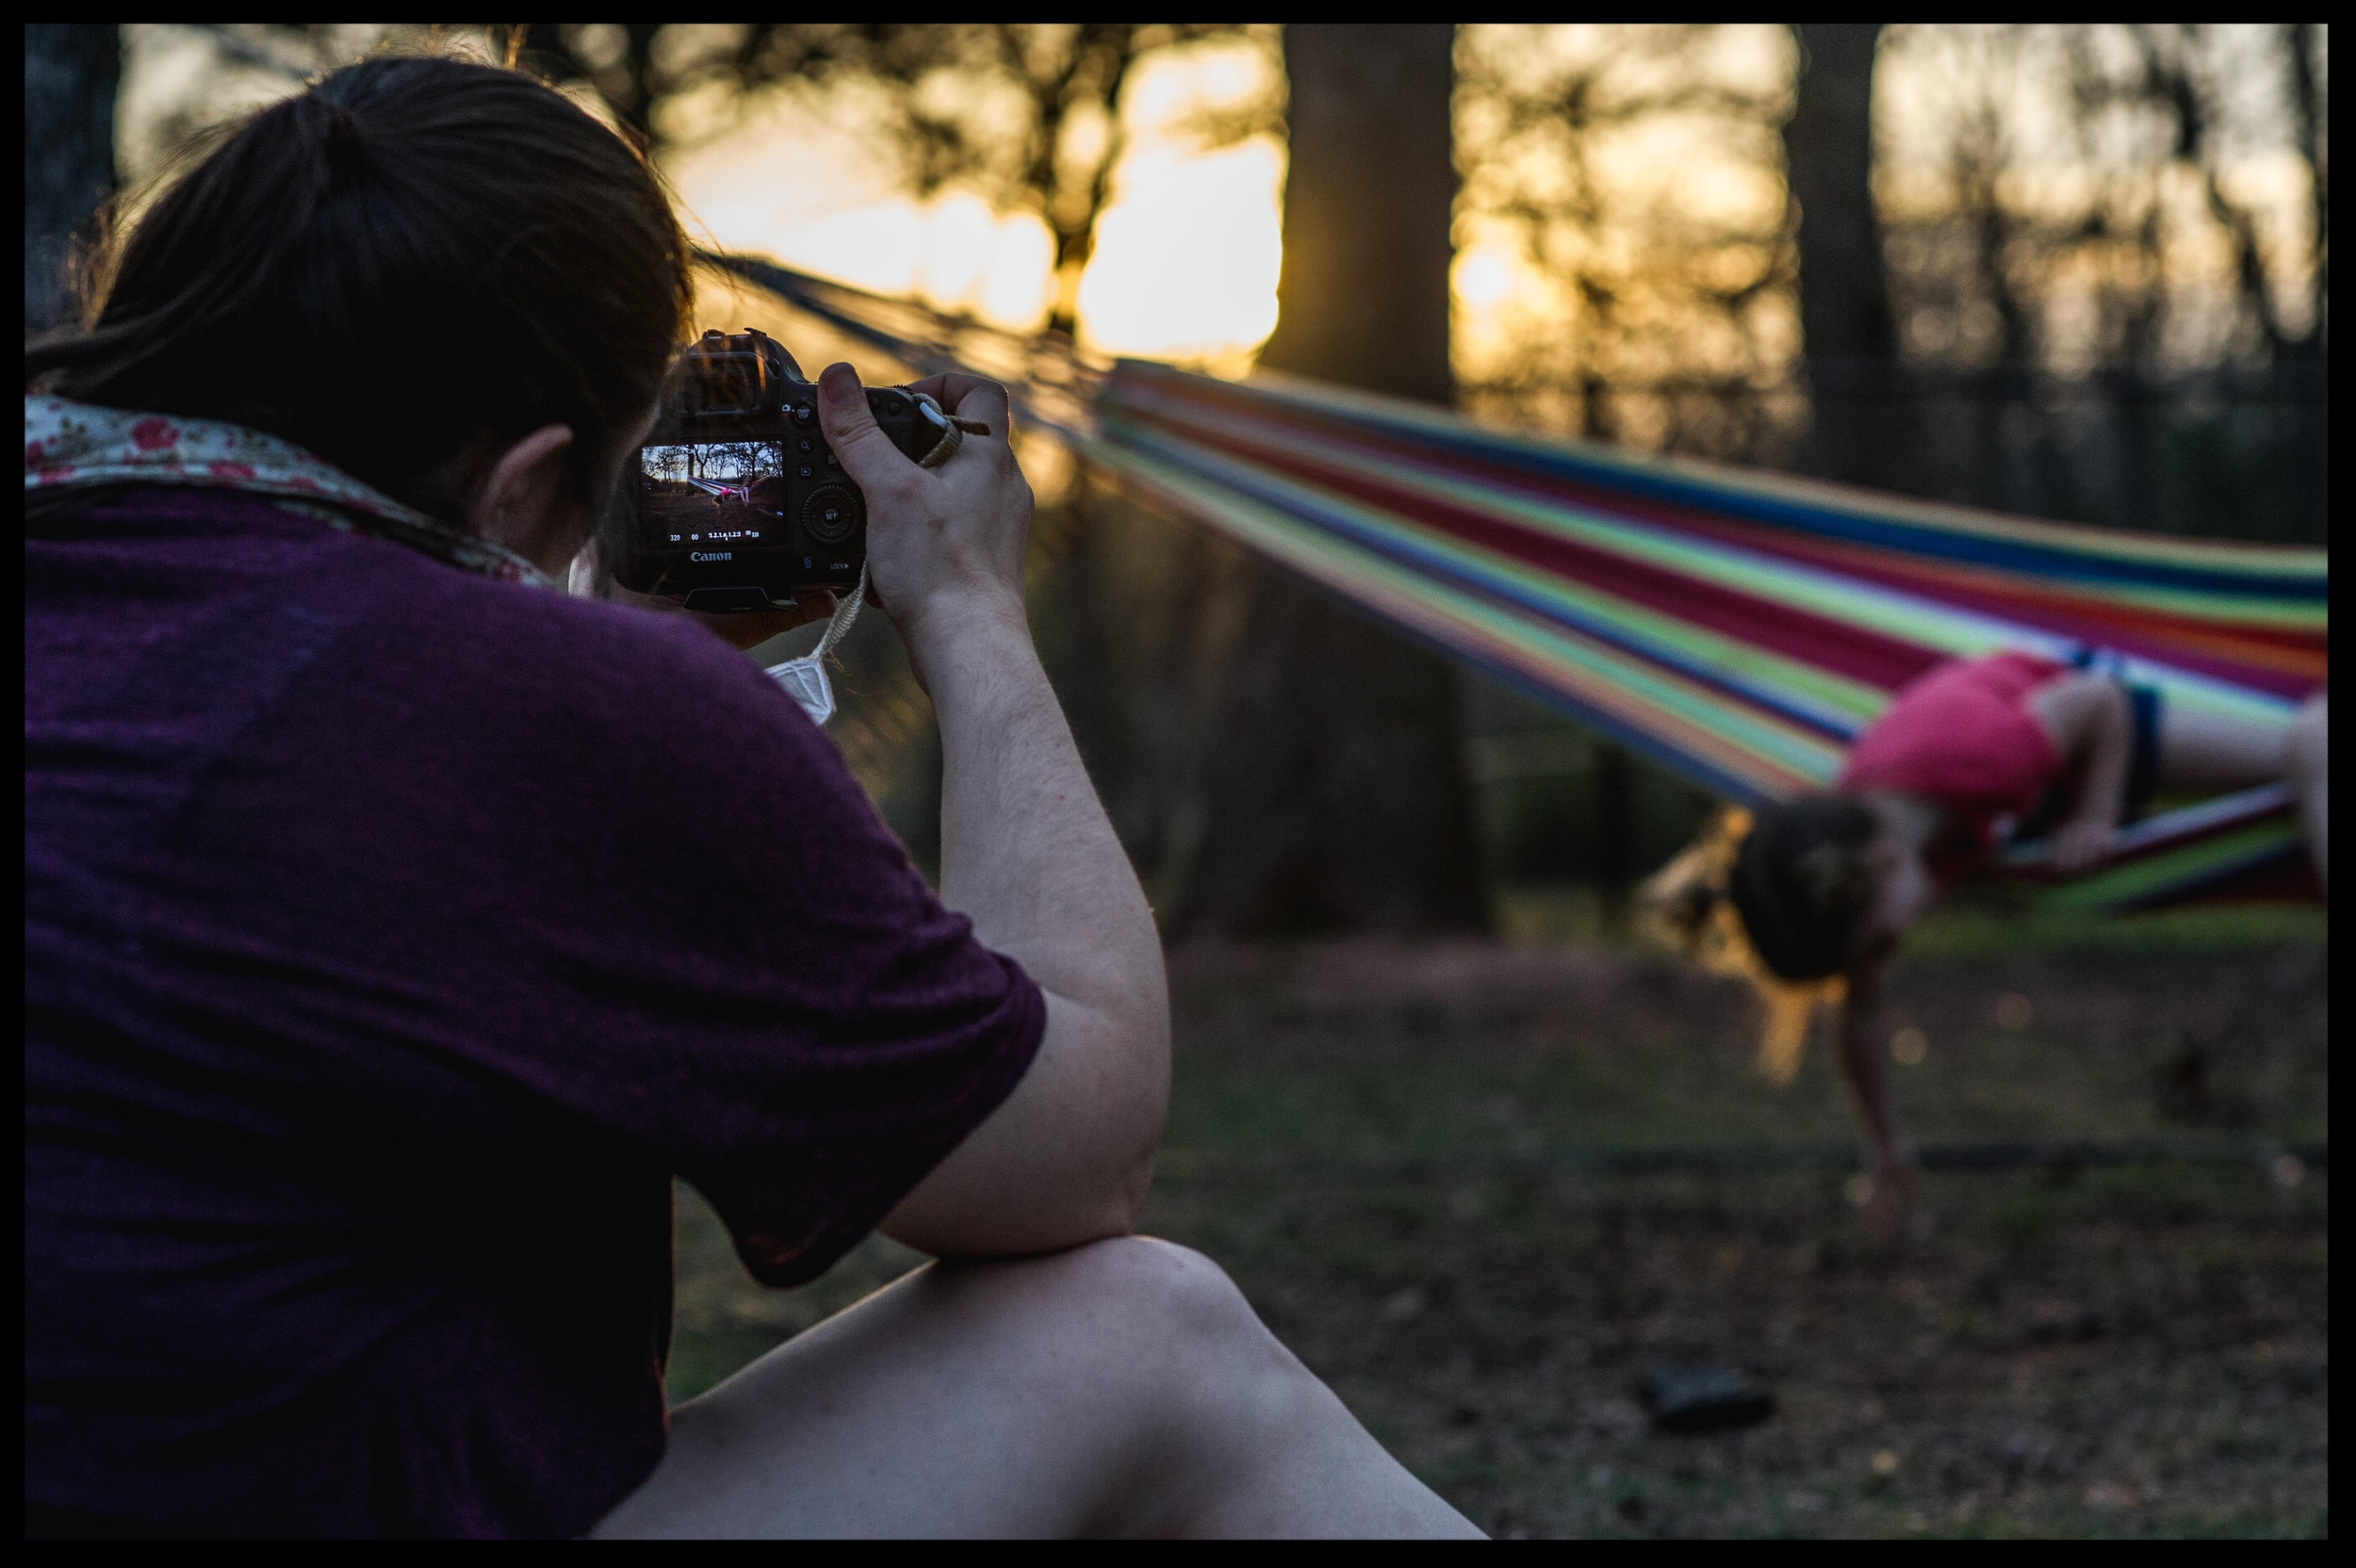 Mommy takes photo of her daughter hanging out of the hammock with backlit hair, color